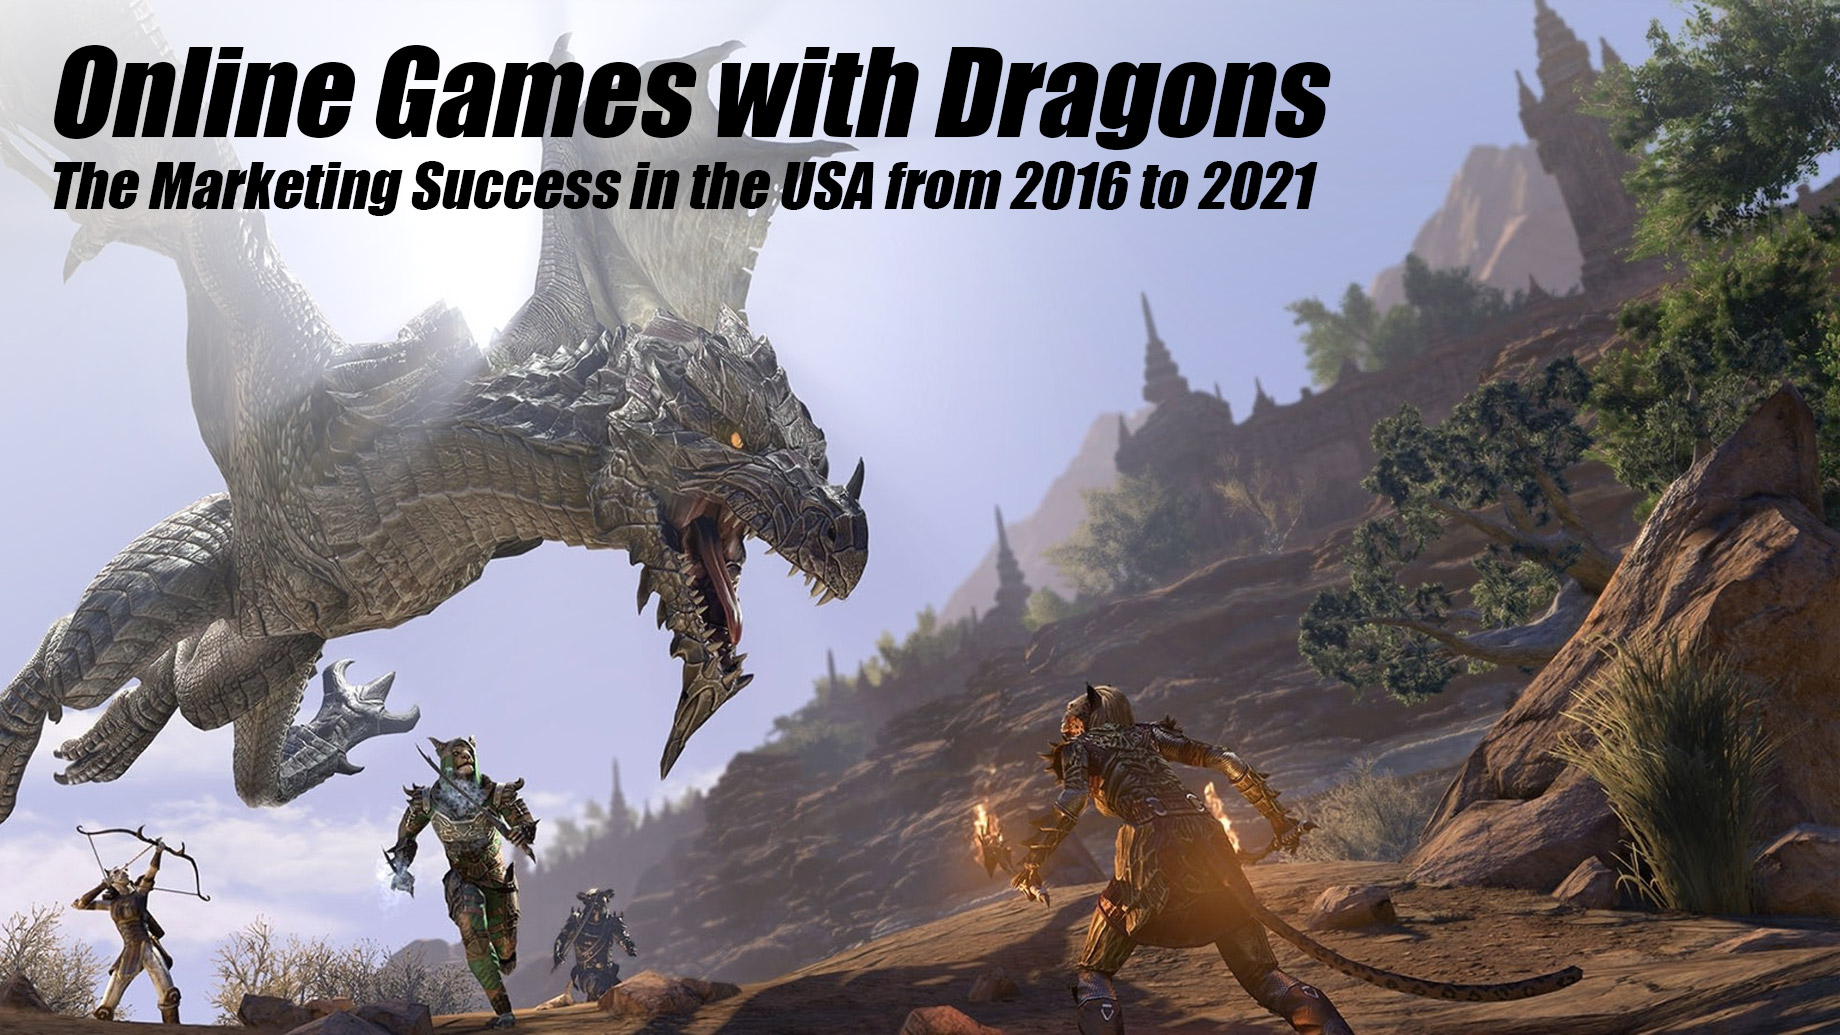 Online Games with Dragons - The Marketing Success in the USA from 2016 to 2021